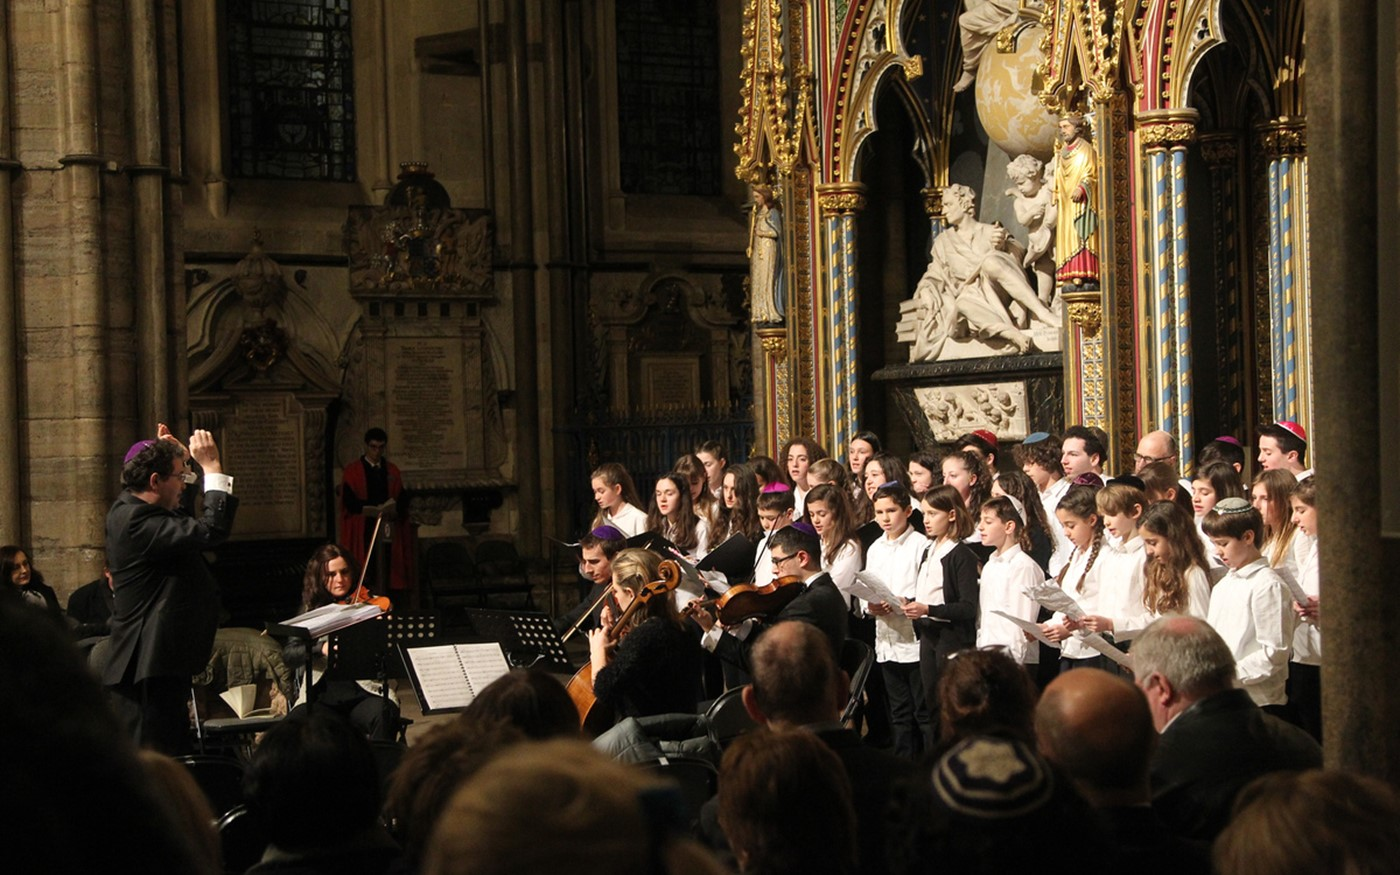 The Belsize Square Synagogue Youth Choir and the Alyth Singer from the Nave